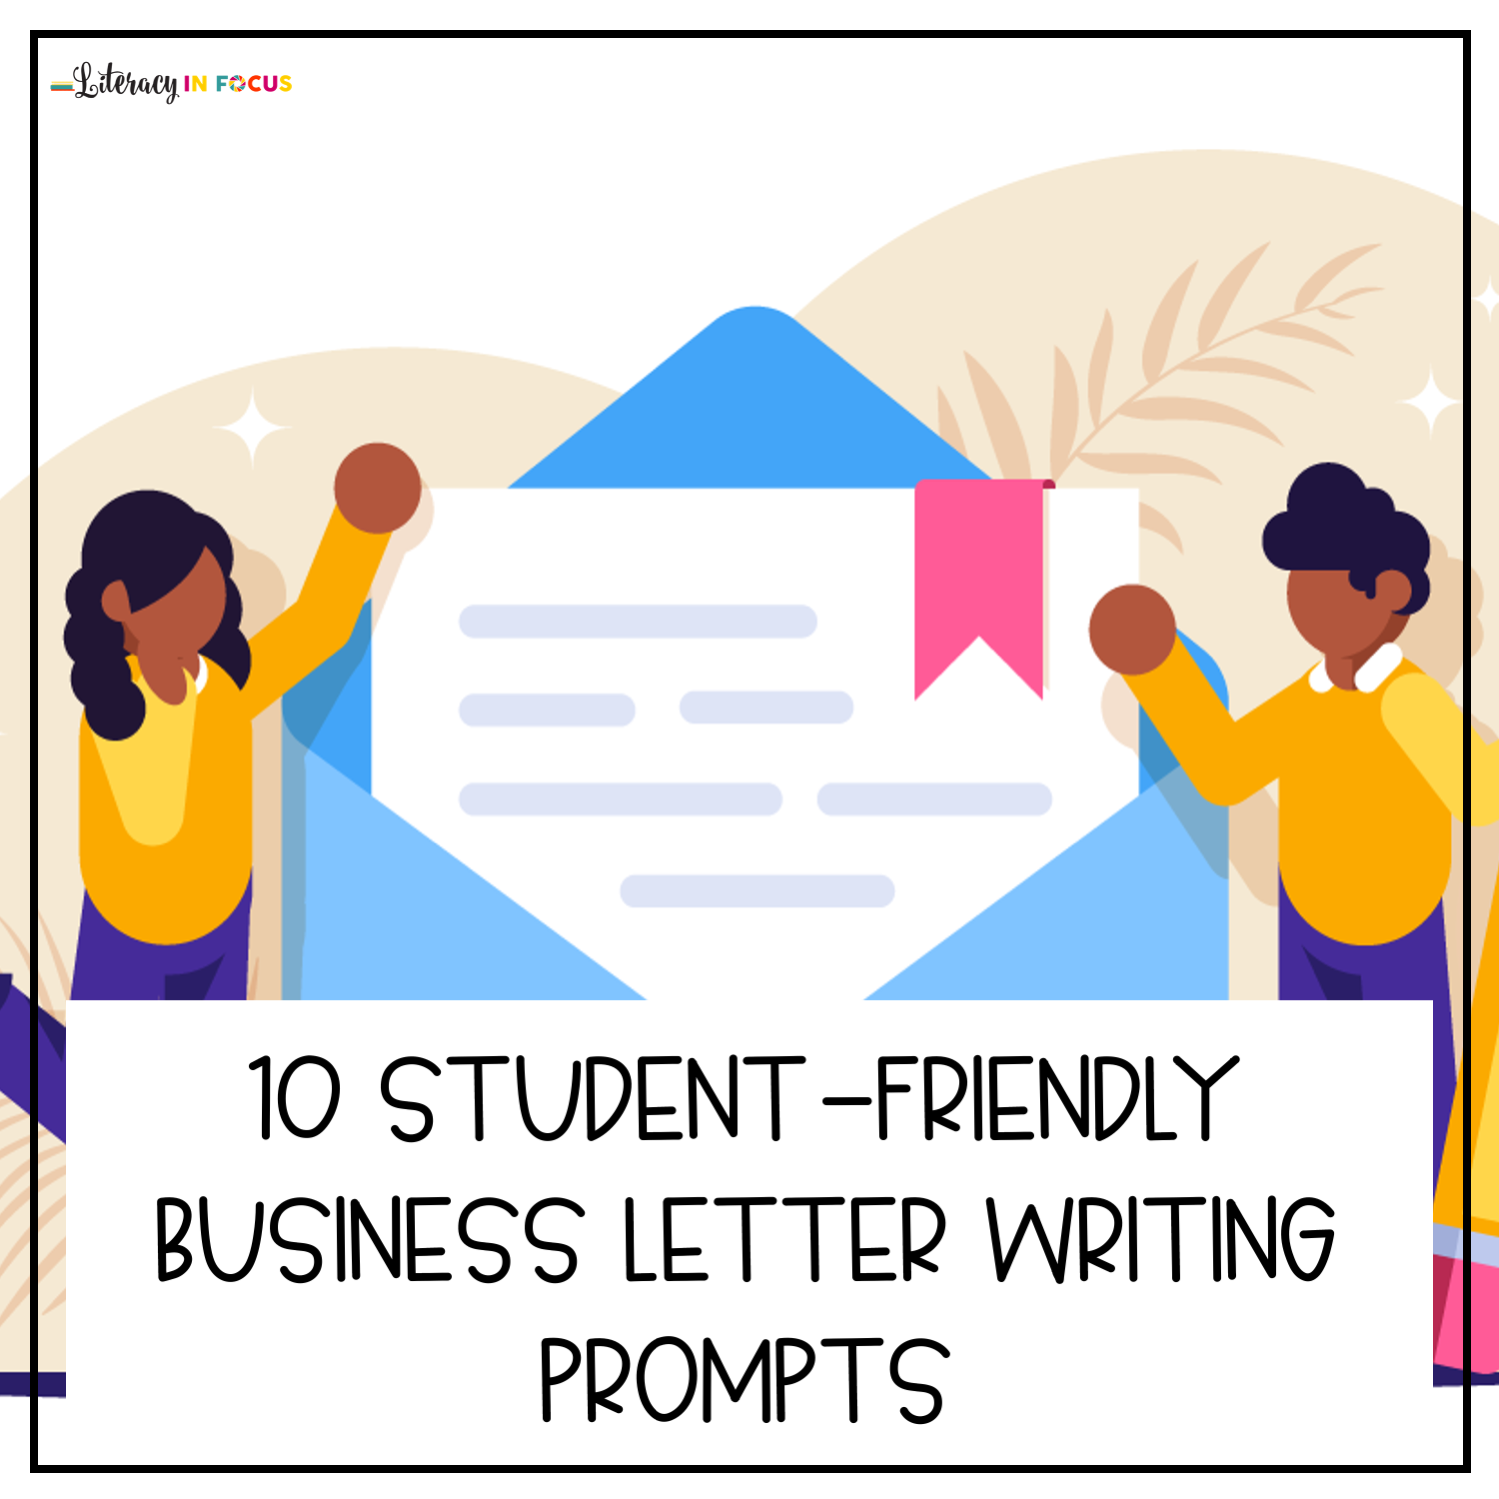 Business Letter Writing Prompts for Students